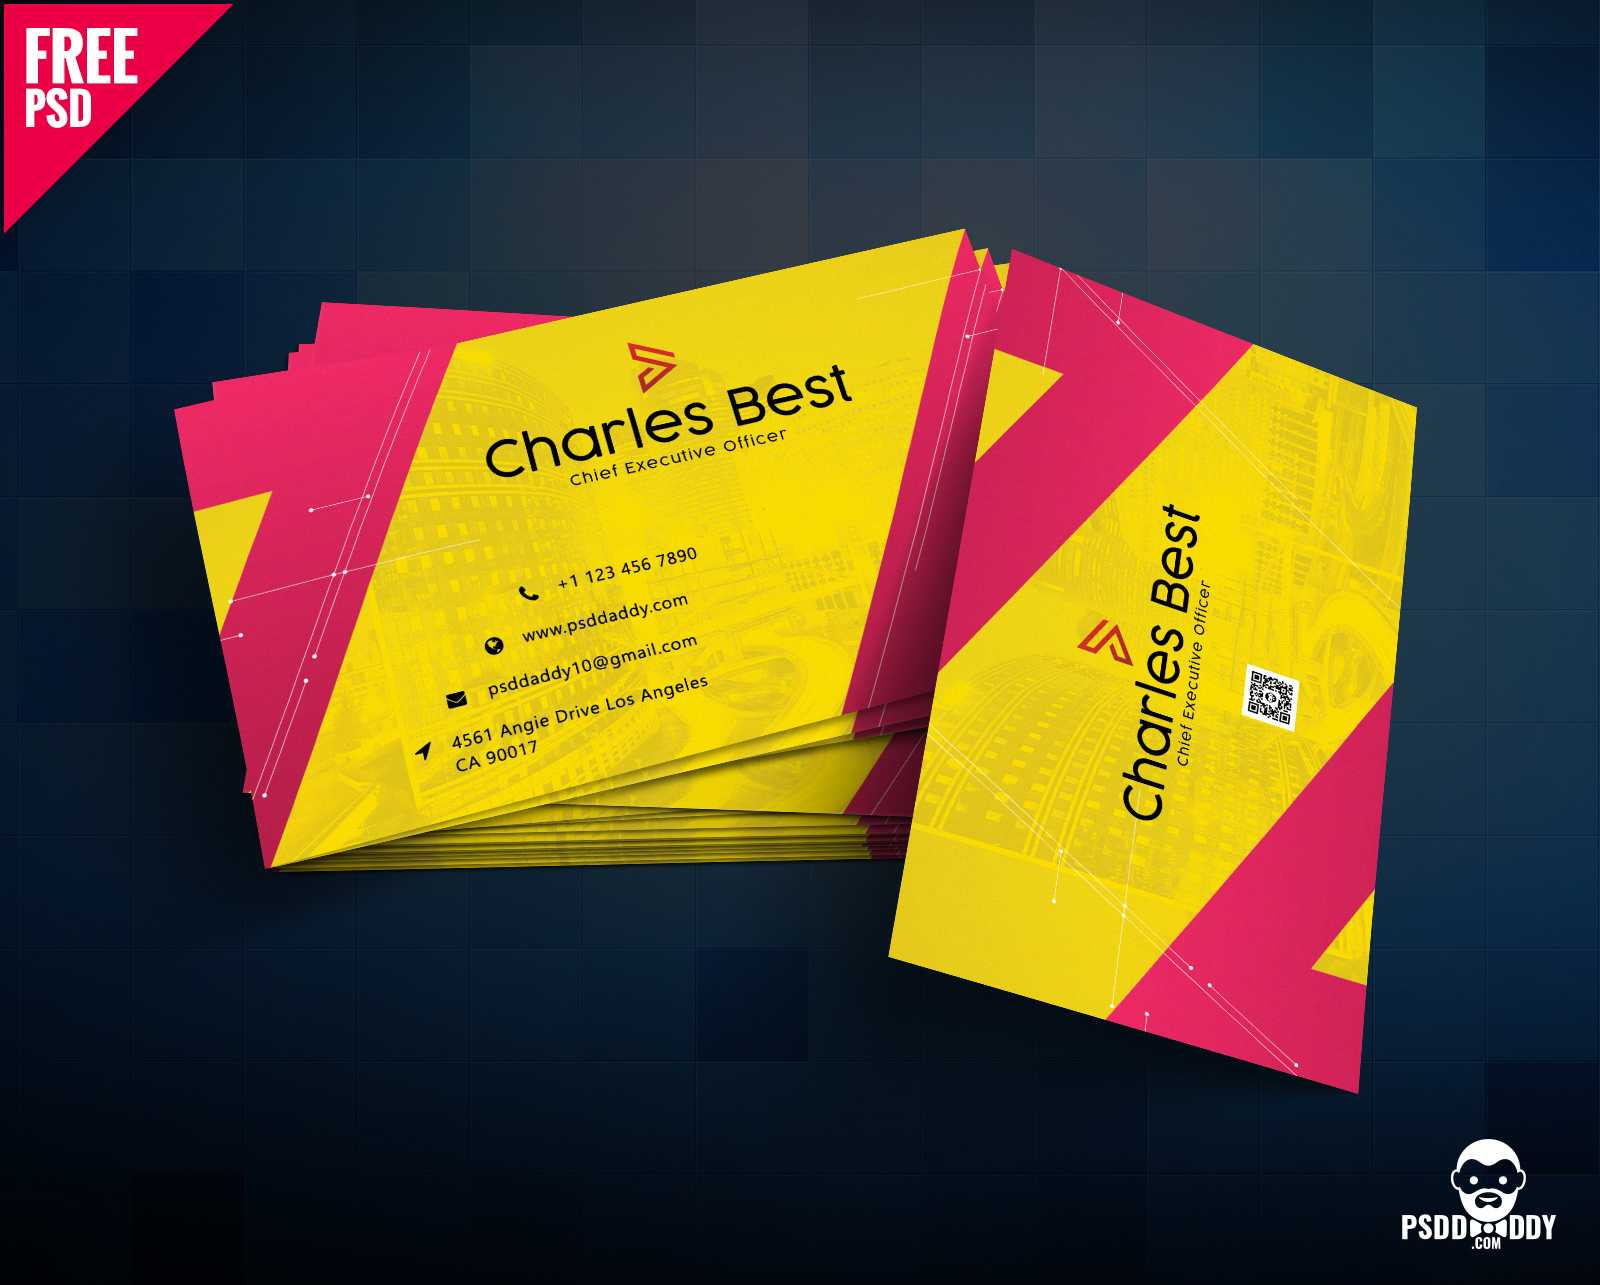 Download] Creative Business Card Free Psd | Psddaddy Pertaining To Business Card Maker Template